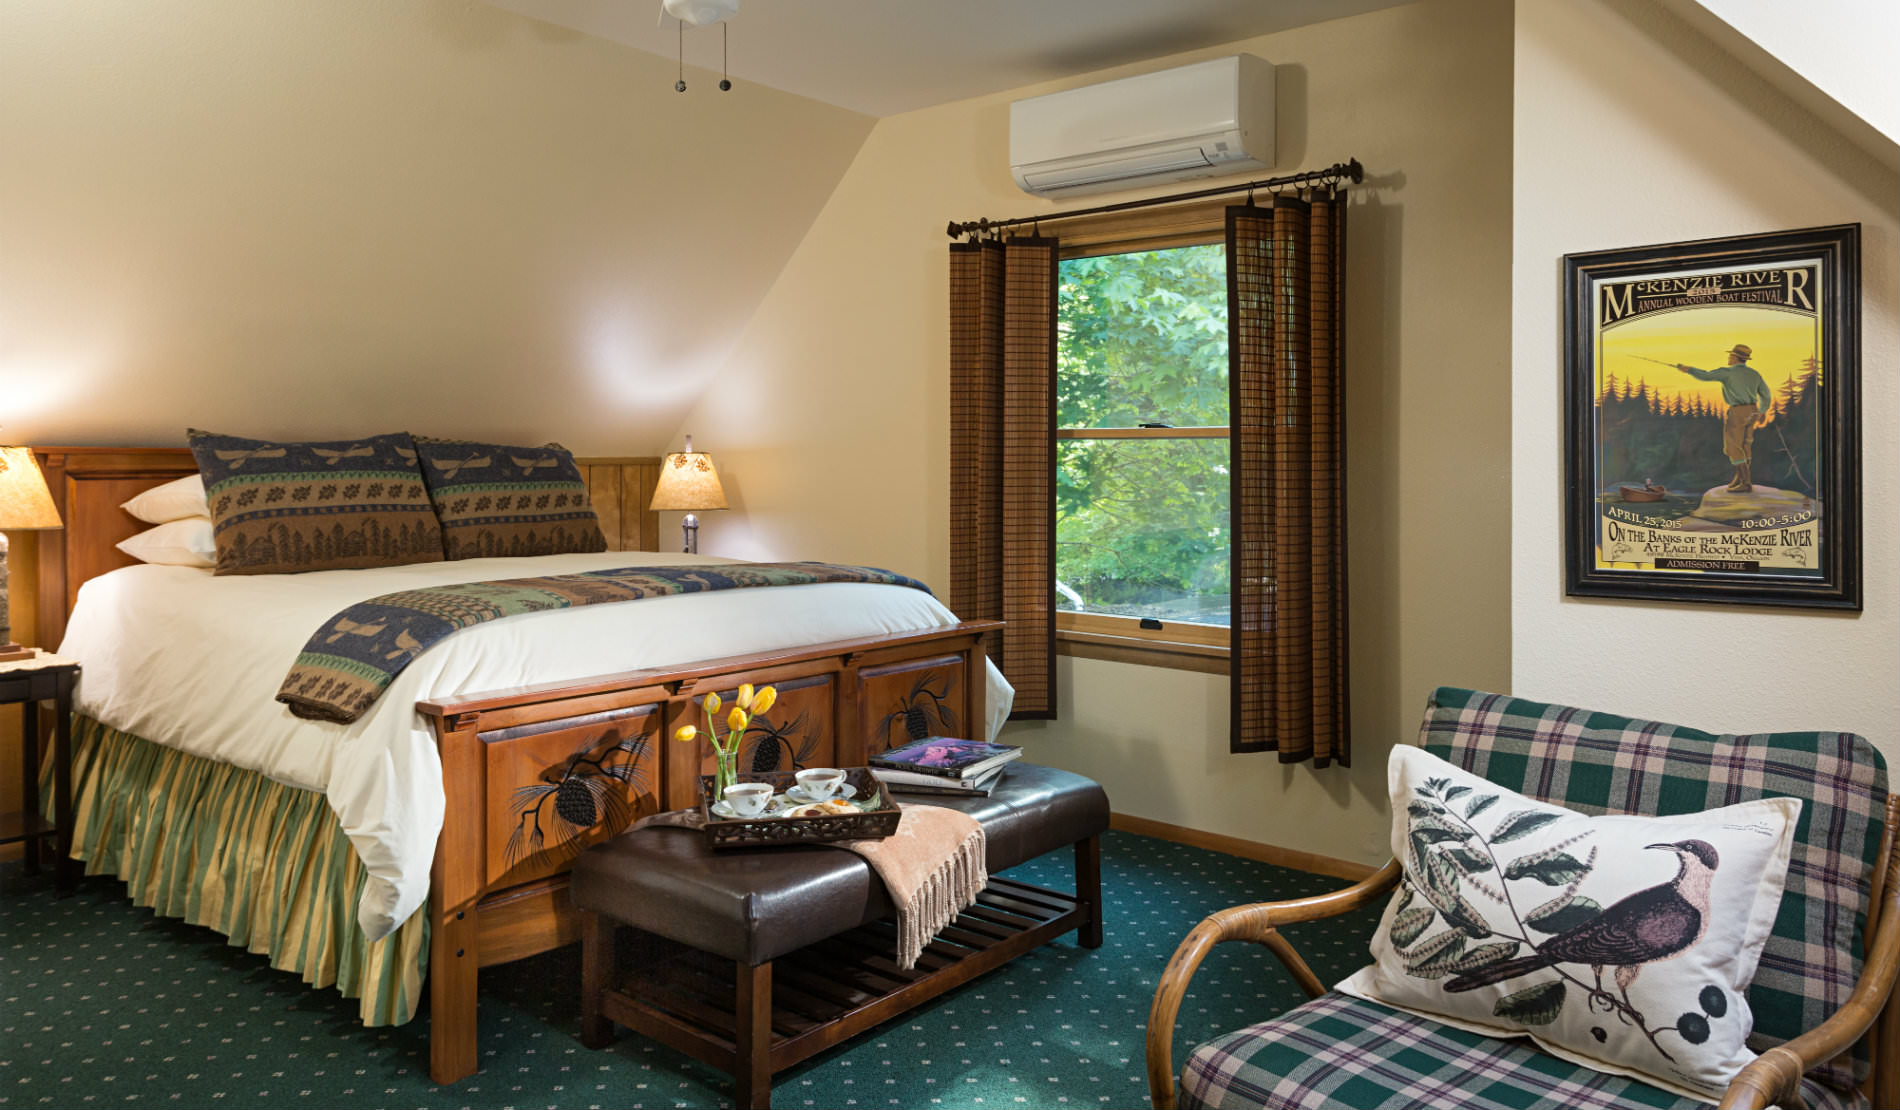 Large wooden bed with white bedding, plaid chair, large wood window with brown drapes.